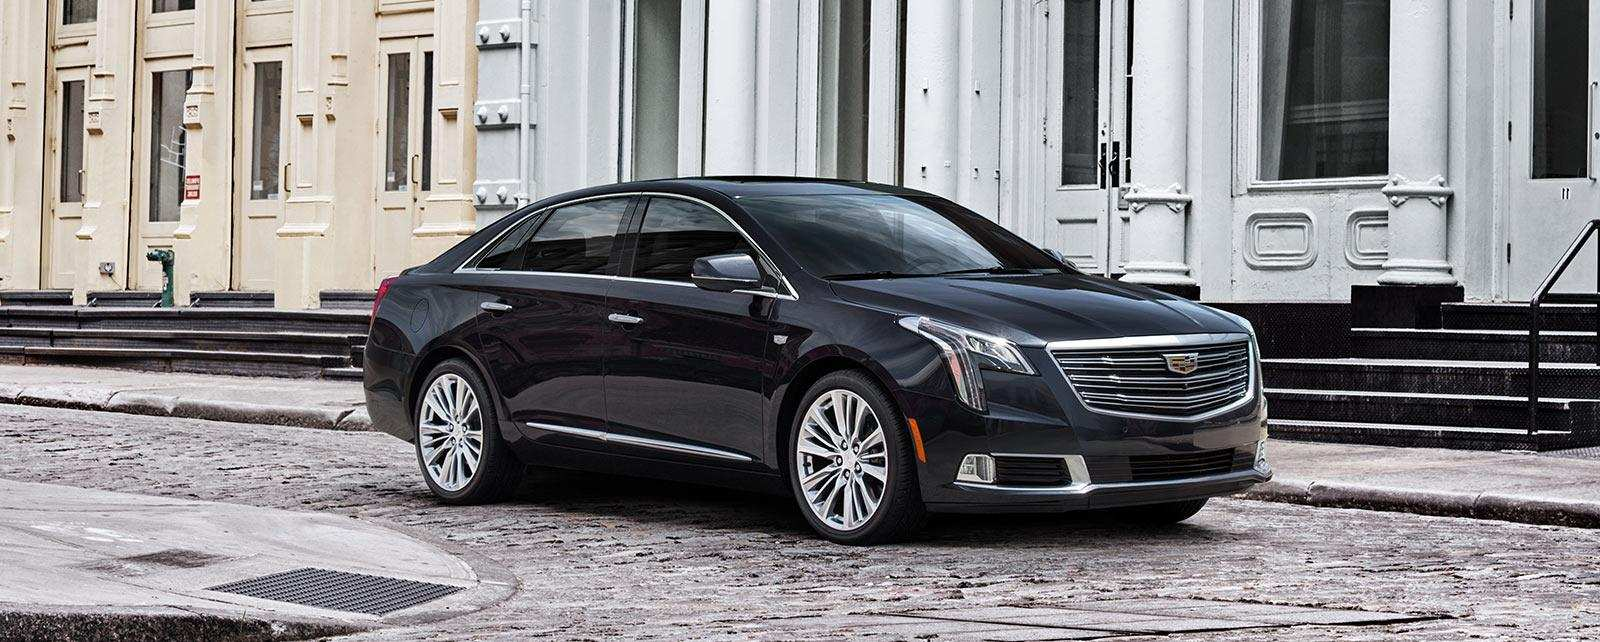 52 Best Review 2019 Candillac Xts Research New by 2019 Candillac Xts